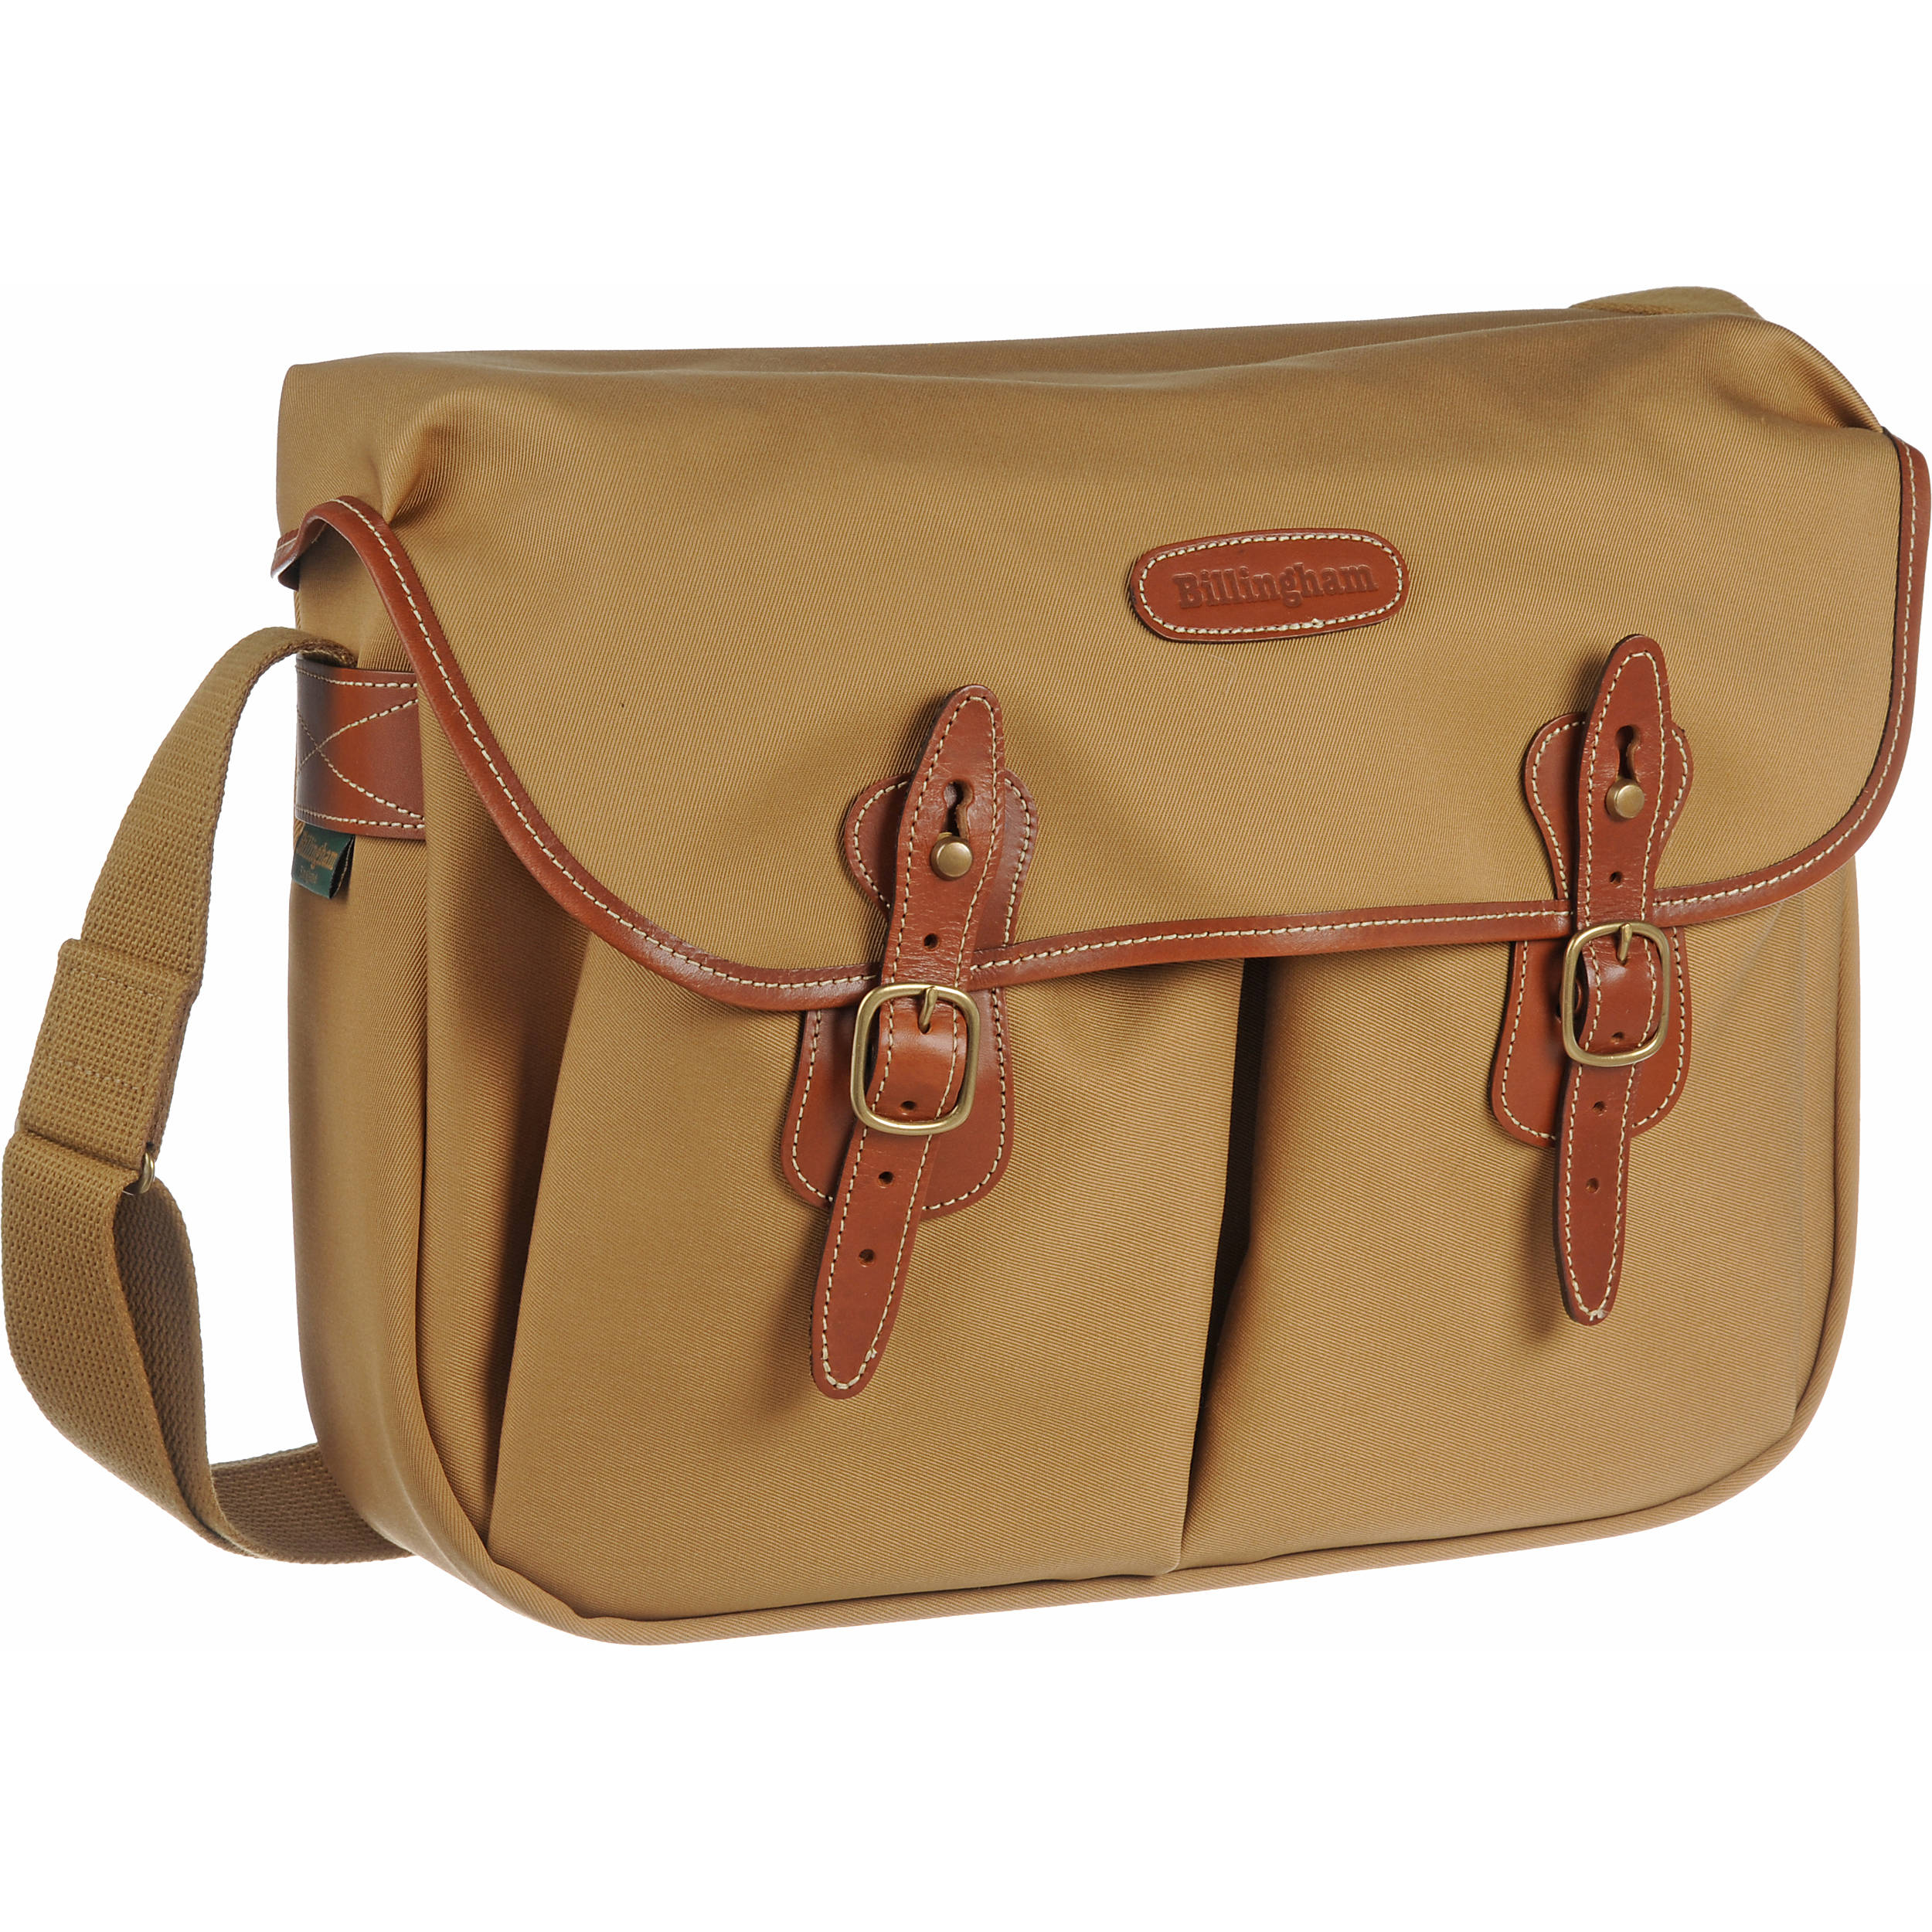 Billingham Hadley Shoulder Bag, Large BI 503533-70 B&H Photo